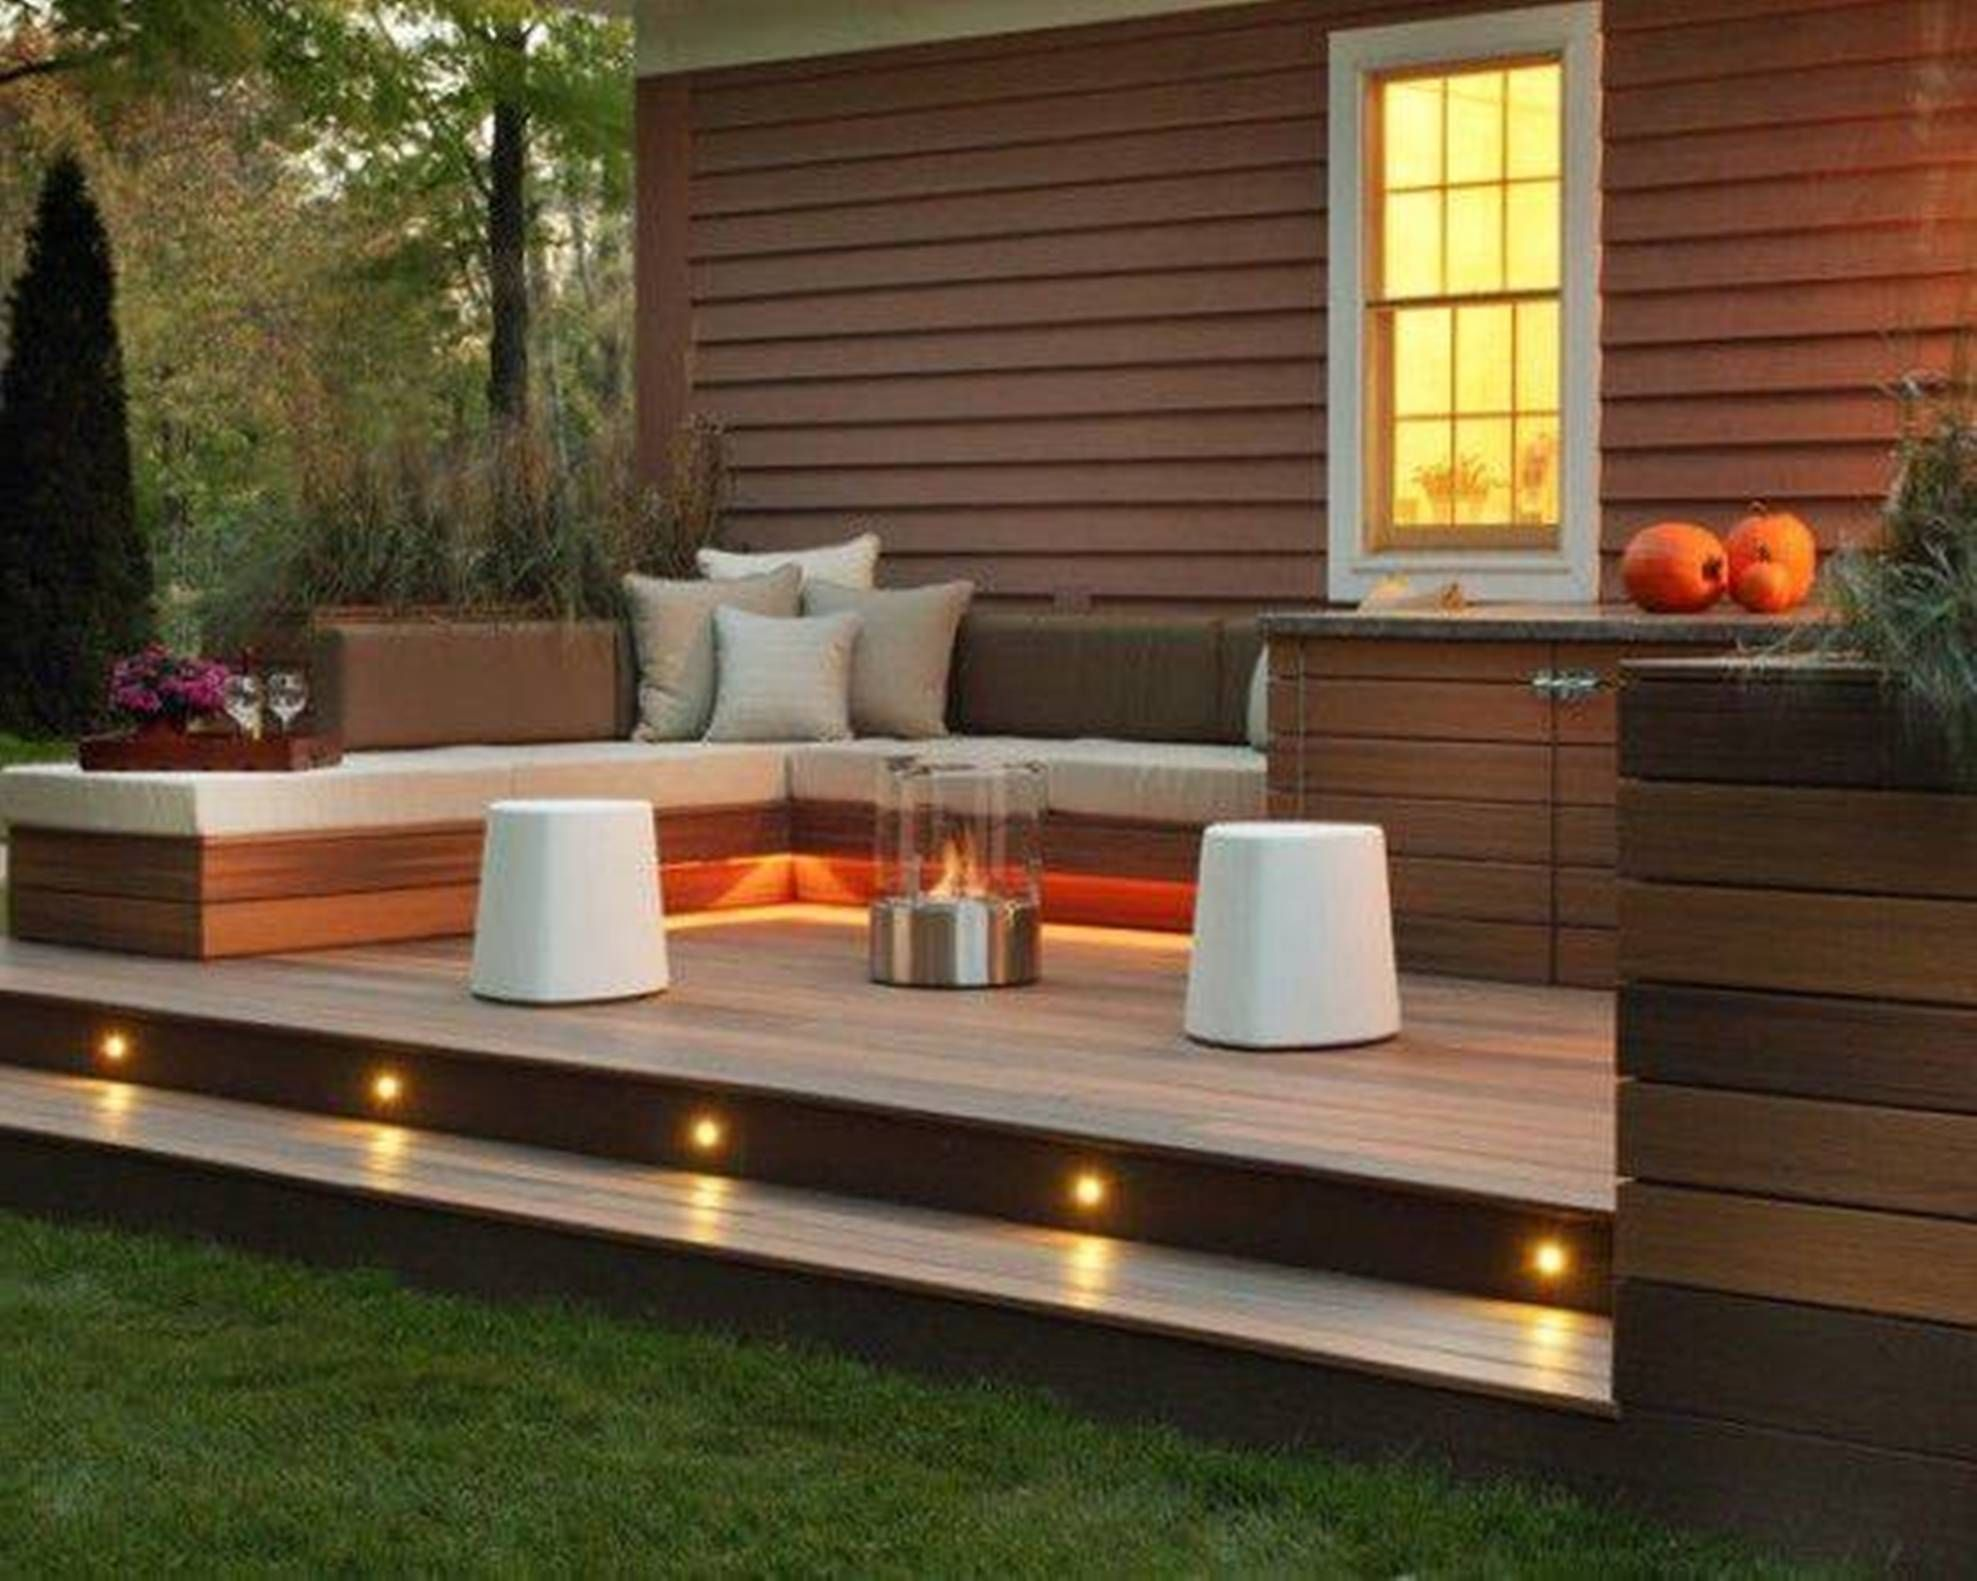 small backyard deck designs with solar lights great small backyard deck designs outdoor small deck ideassmall backyard deck ideassmall backyard deck - Patio Deck Design Ideas